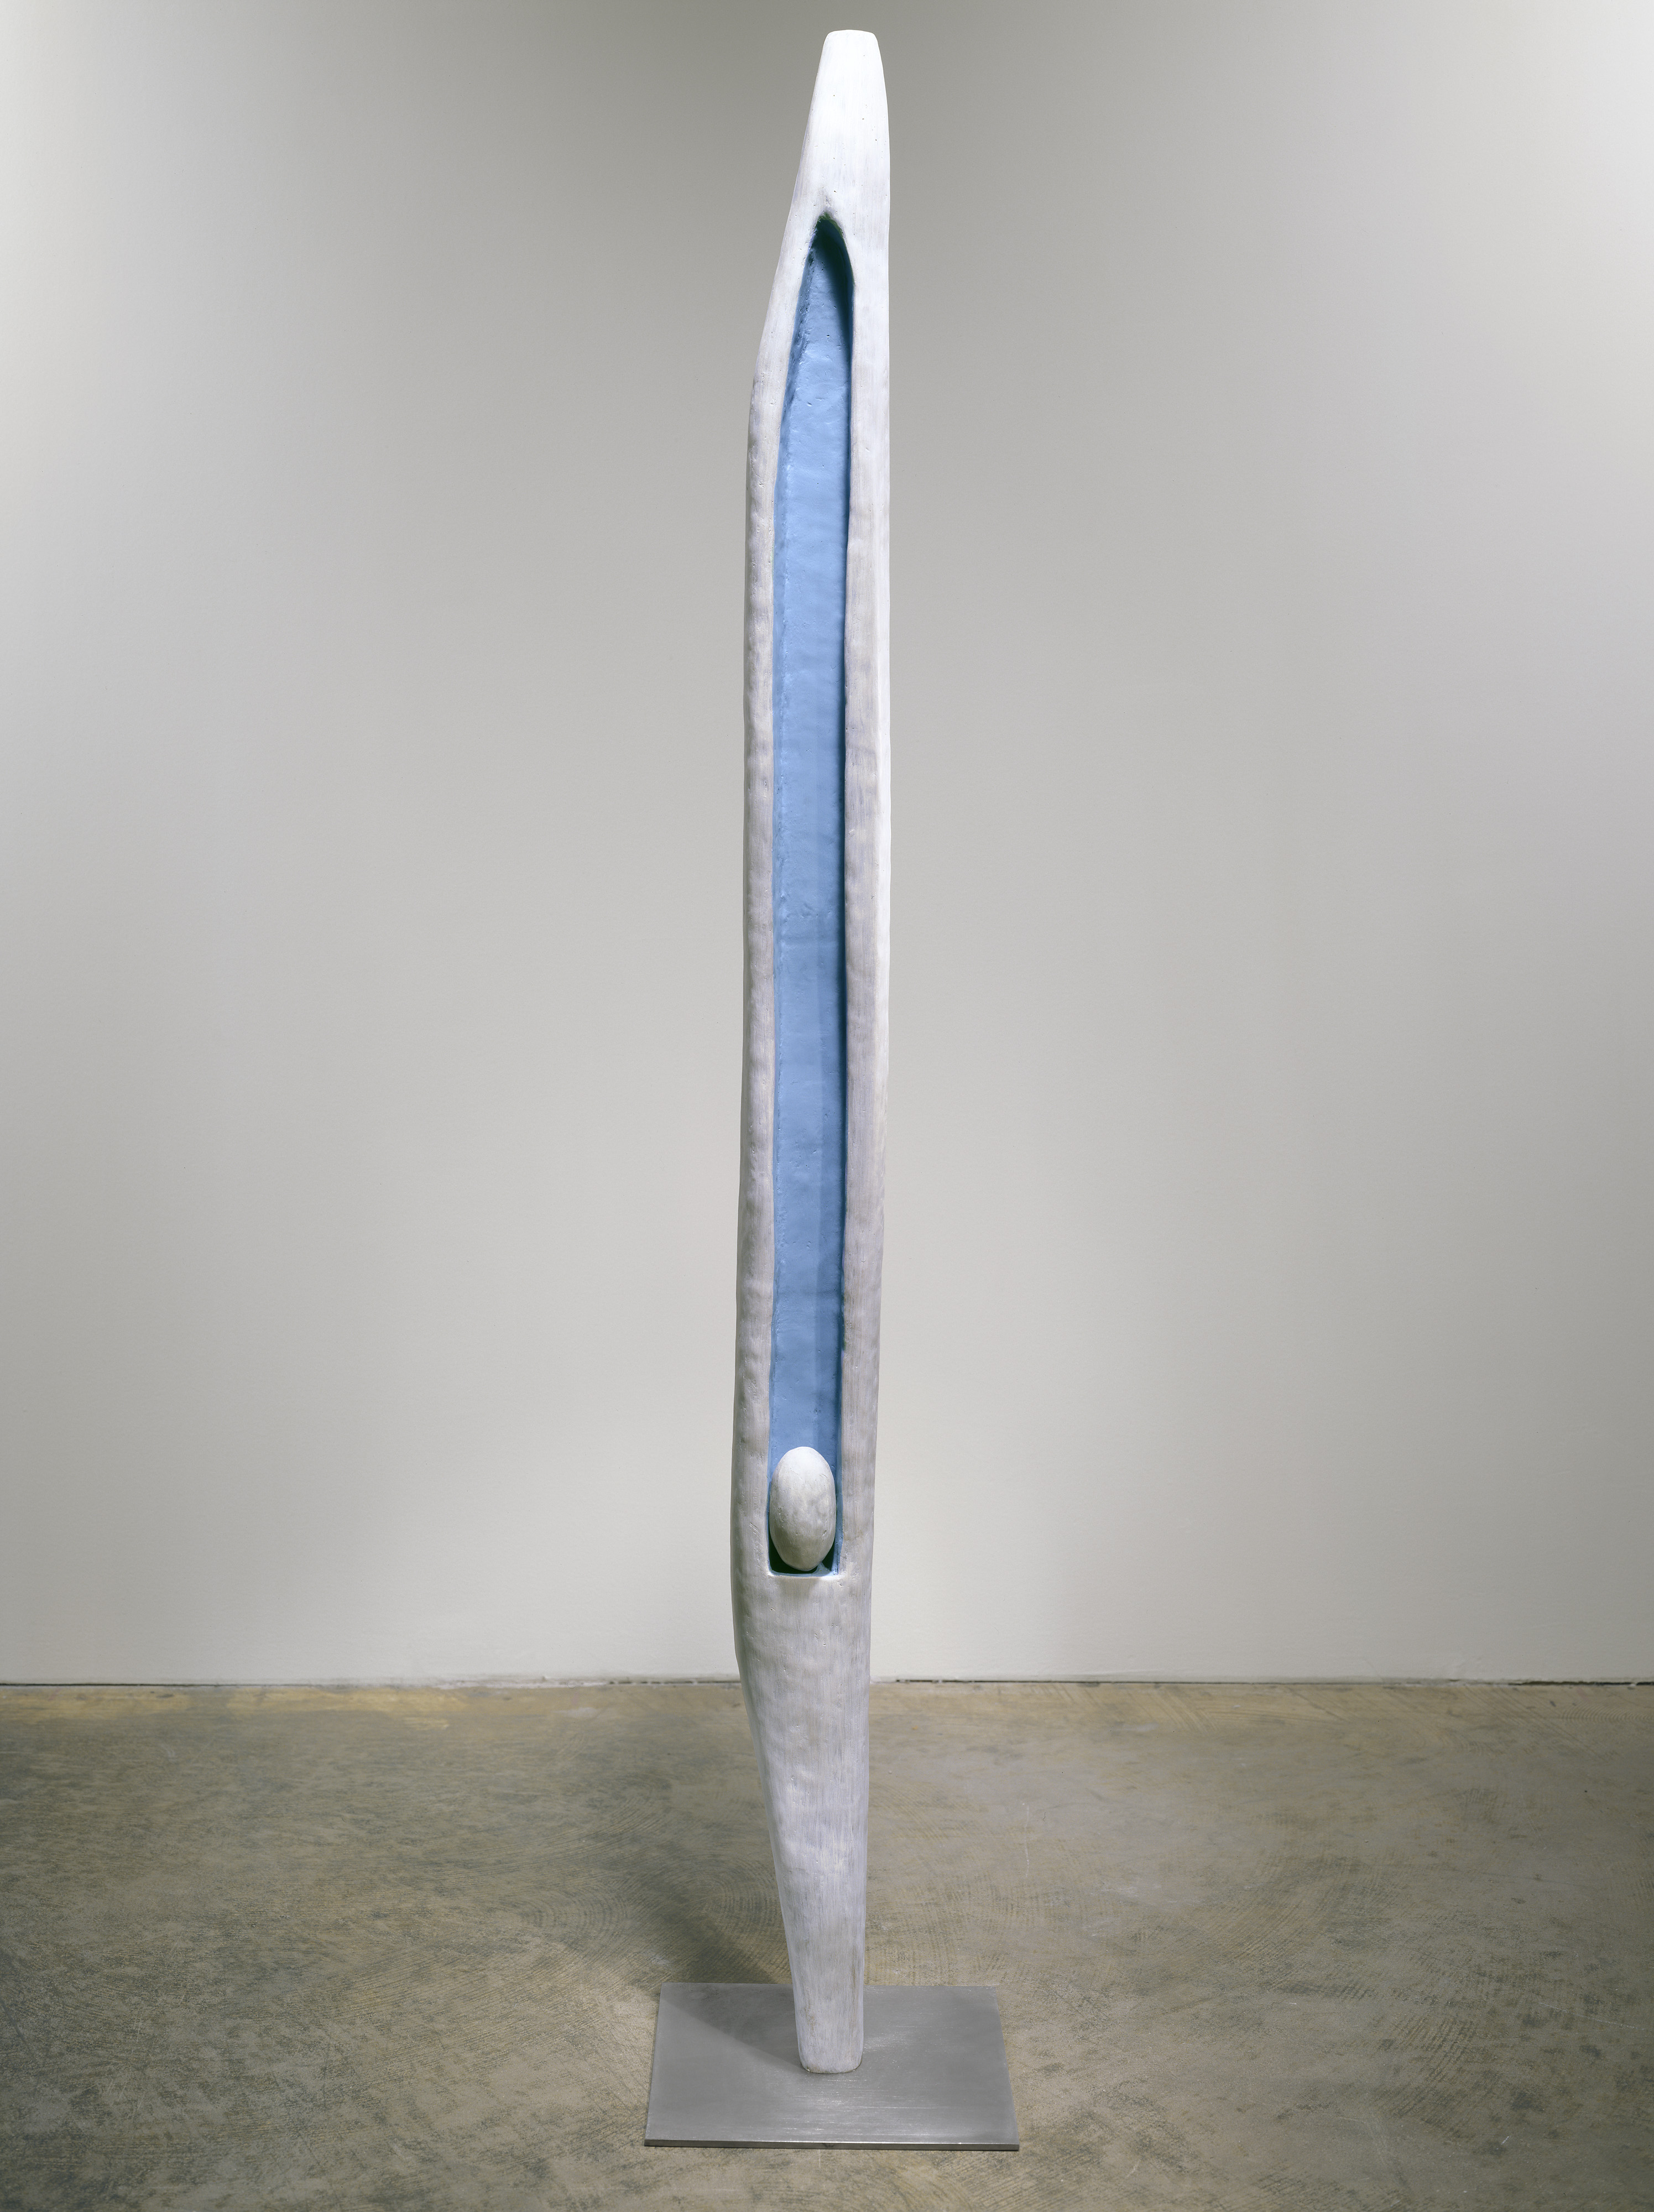 Louise Bourgeois, Untitled, 1947-49, Bronze painted white and blue, stainless steel 173.4 x 30.5 x 30.5 cm ©The Easton Foundation/VAGA, New York/ DACS, London 2017